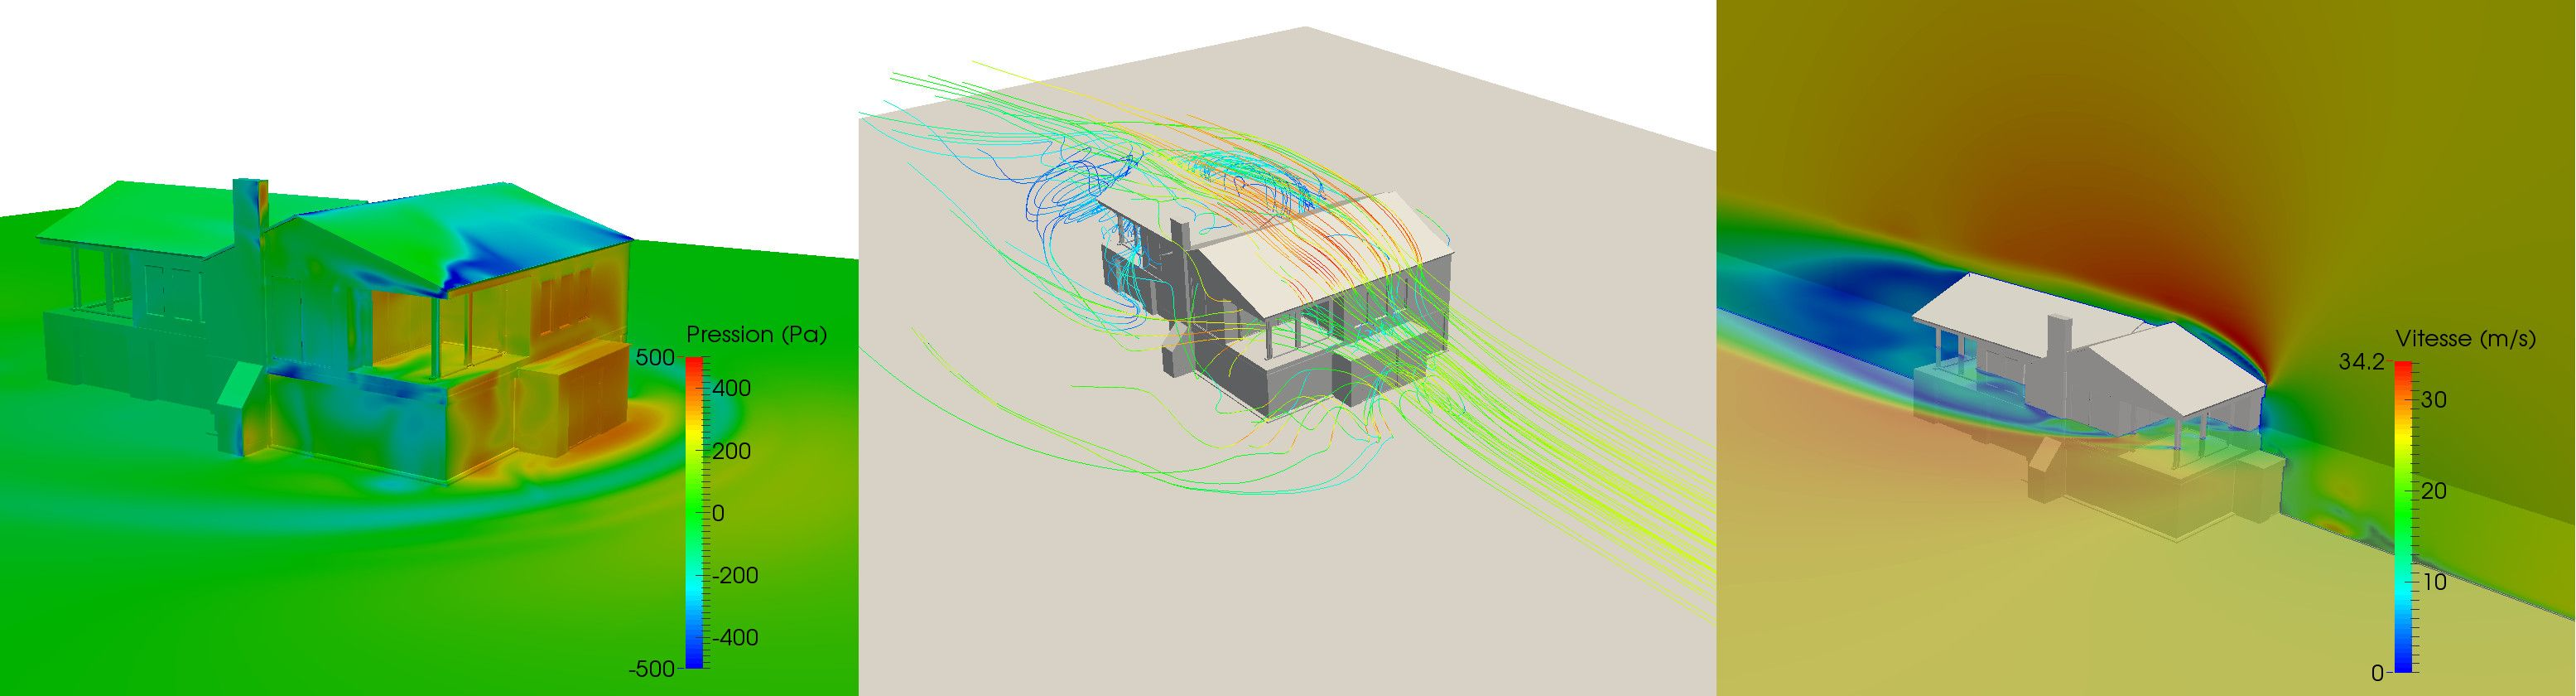 CFD simulation of the wind around a building  From left to right